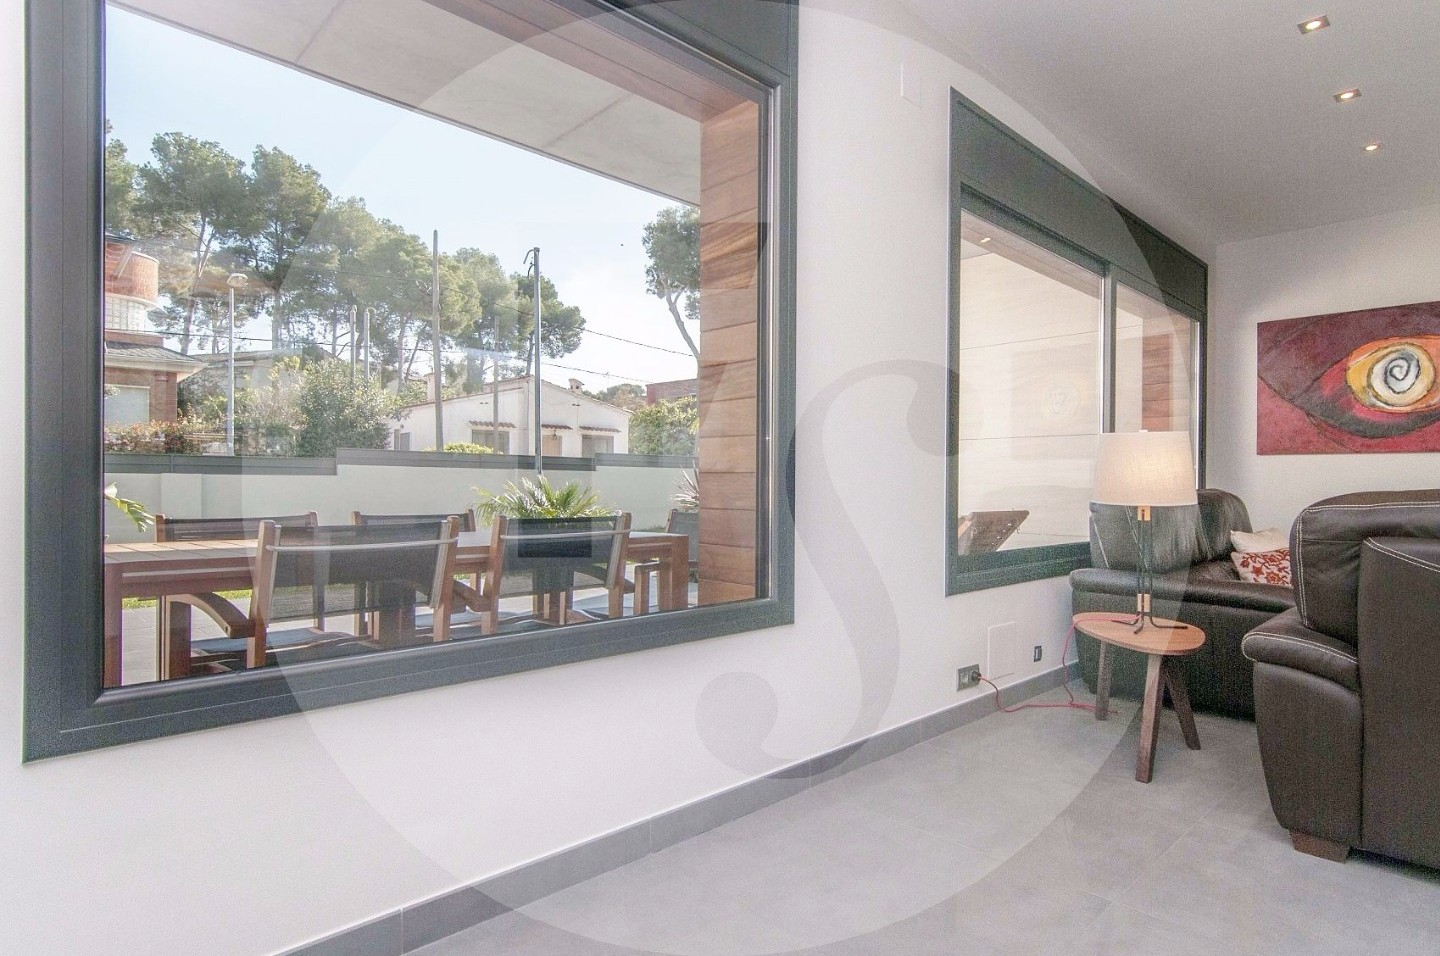 spelndid house and room design. Splendid house of recent construction in Montemar  a residential area located Castelldefels next to Barcelona Ref V19060 Forcadell Suite